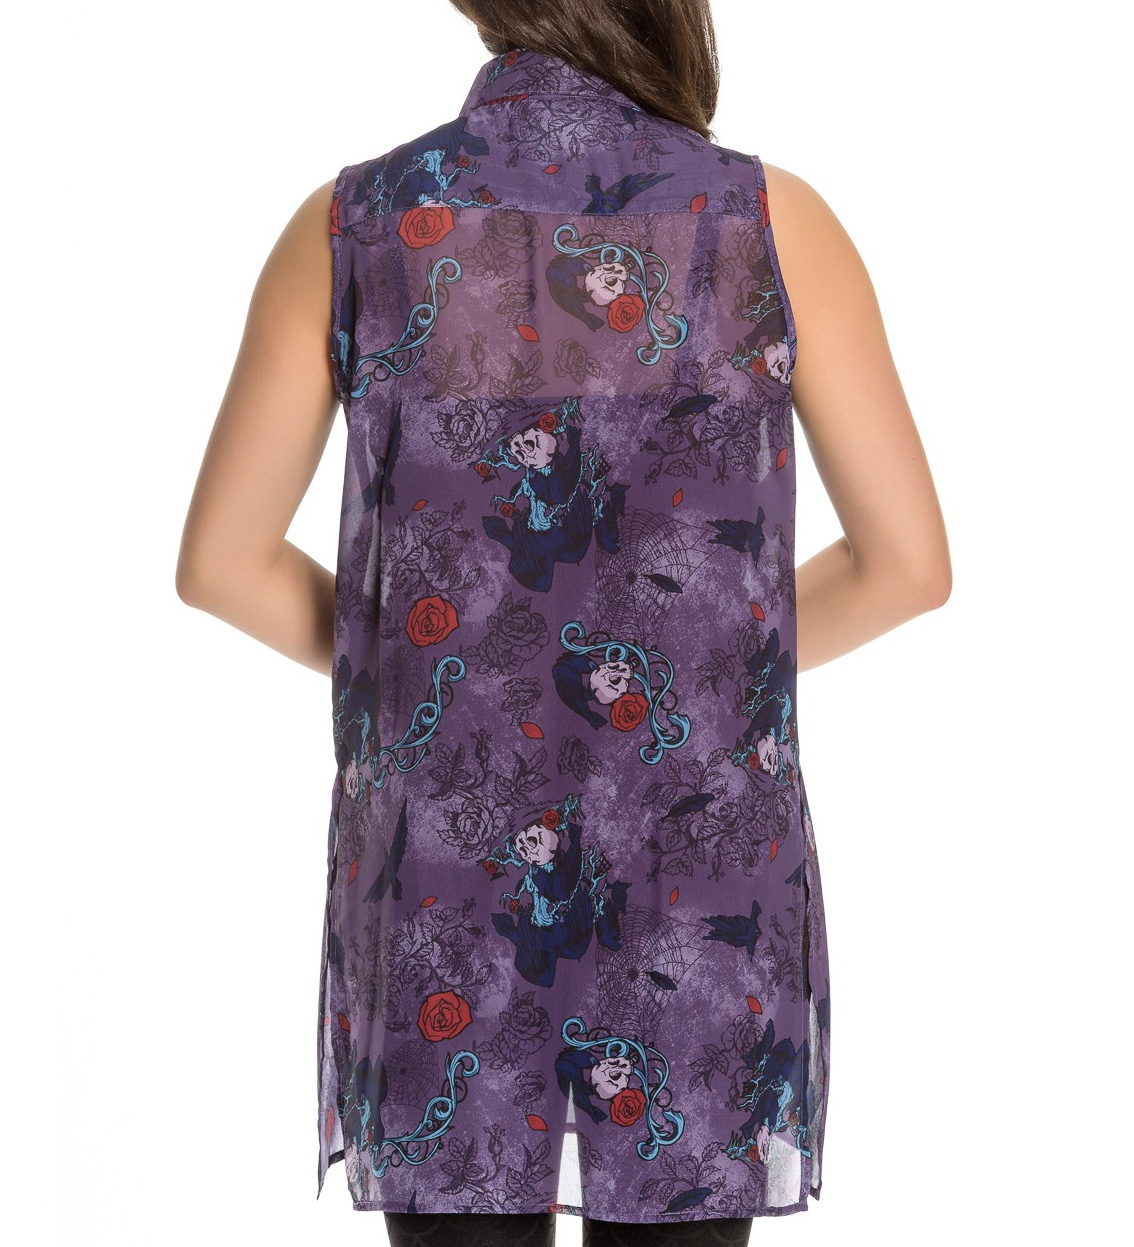 Hell-Bunny-Shirt-Top-Goth-Punk-Roses-Skulls-RAVEN-Purple-Blouse-All-Sizes thumbnail 17